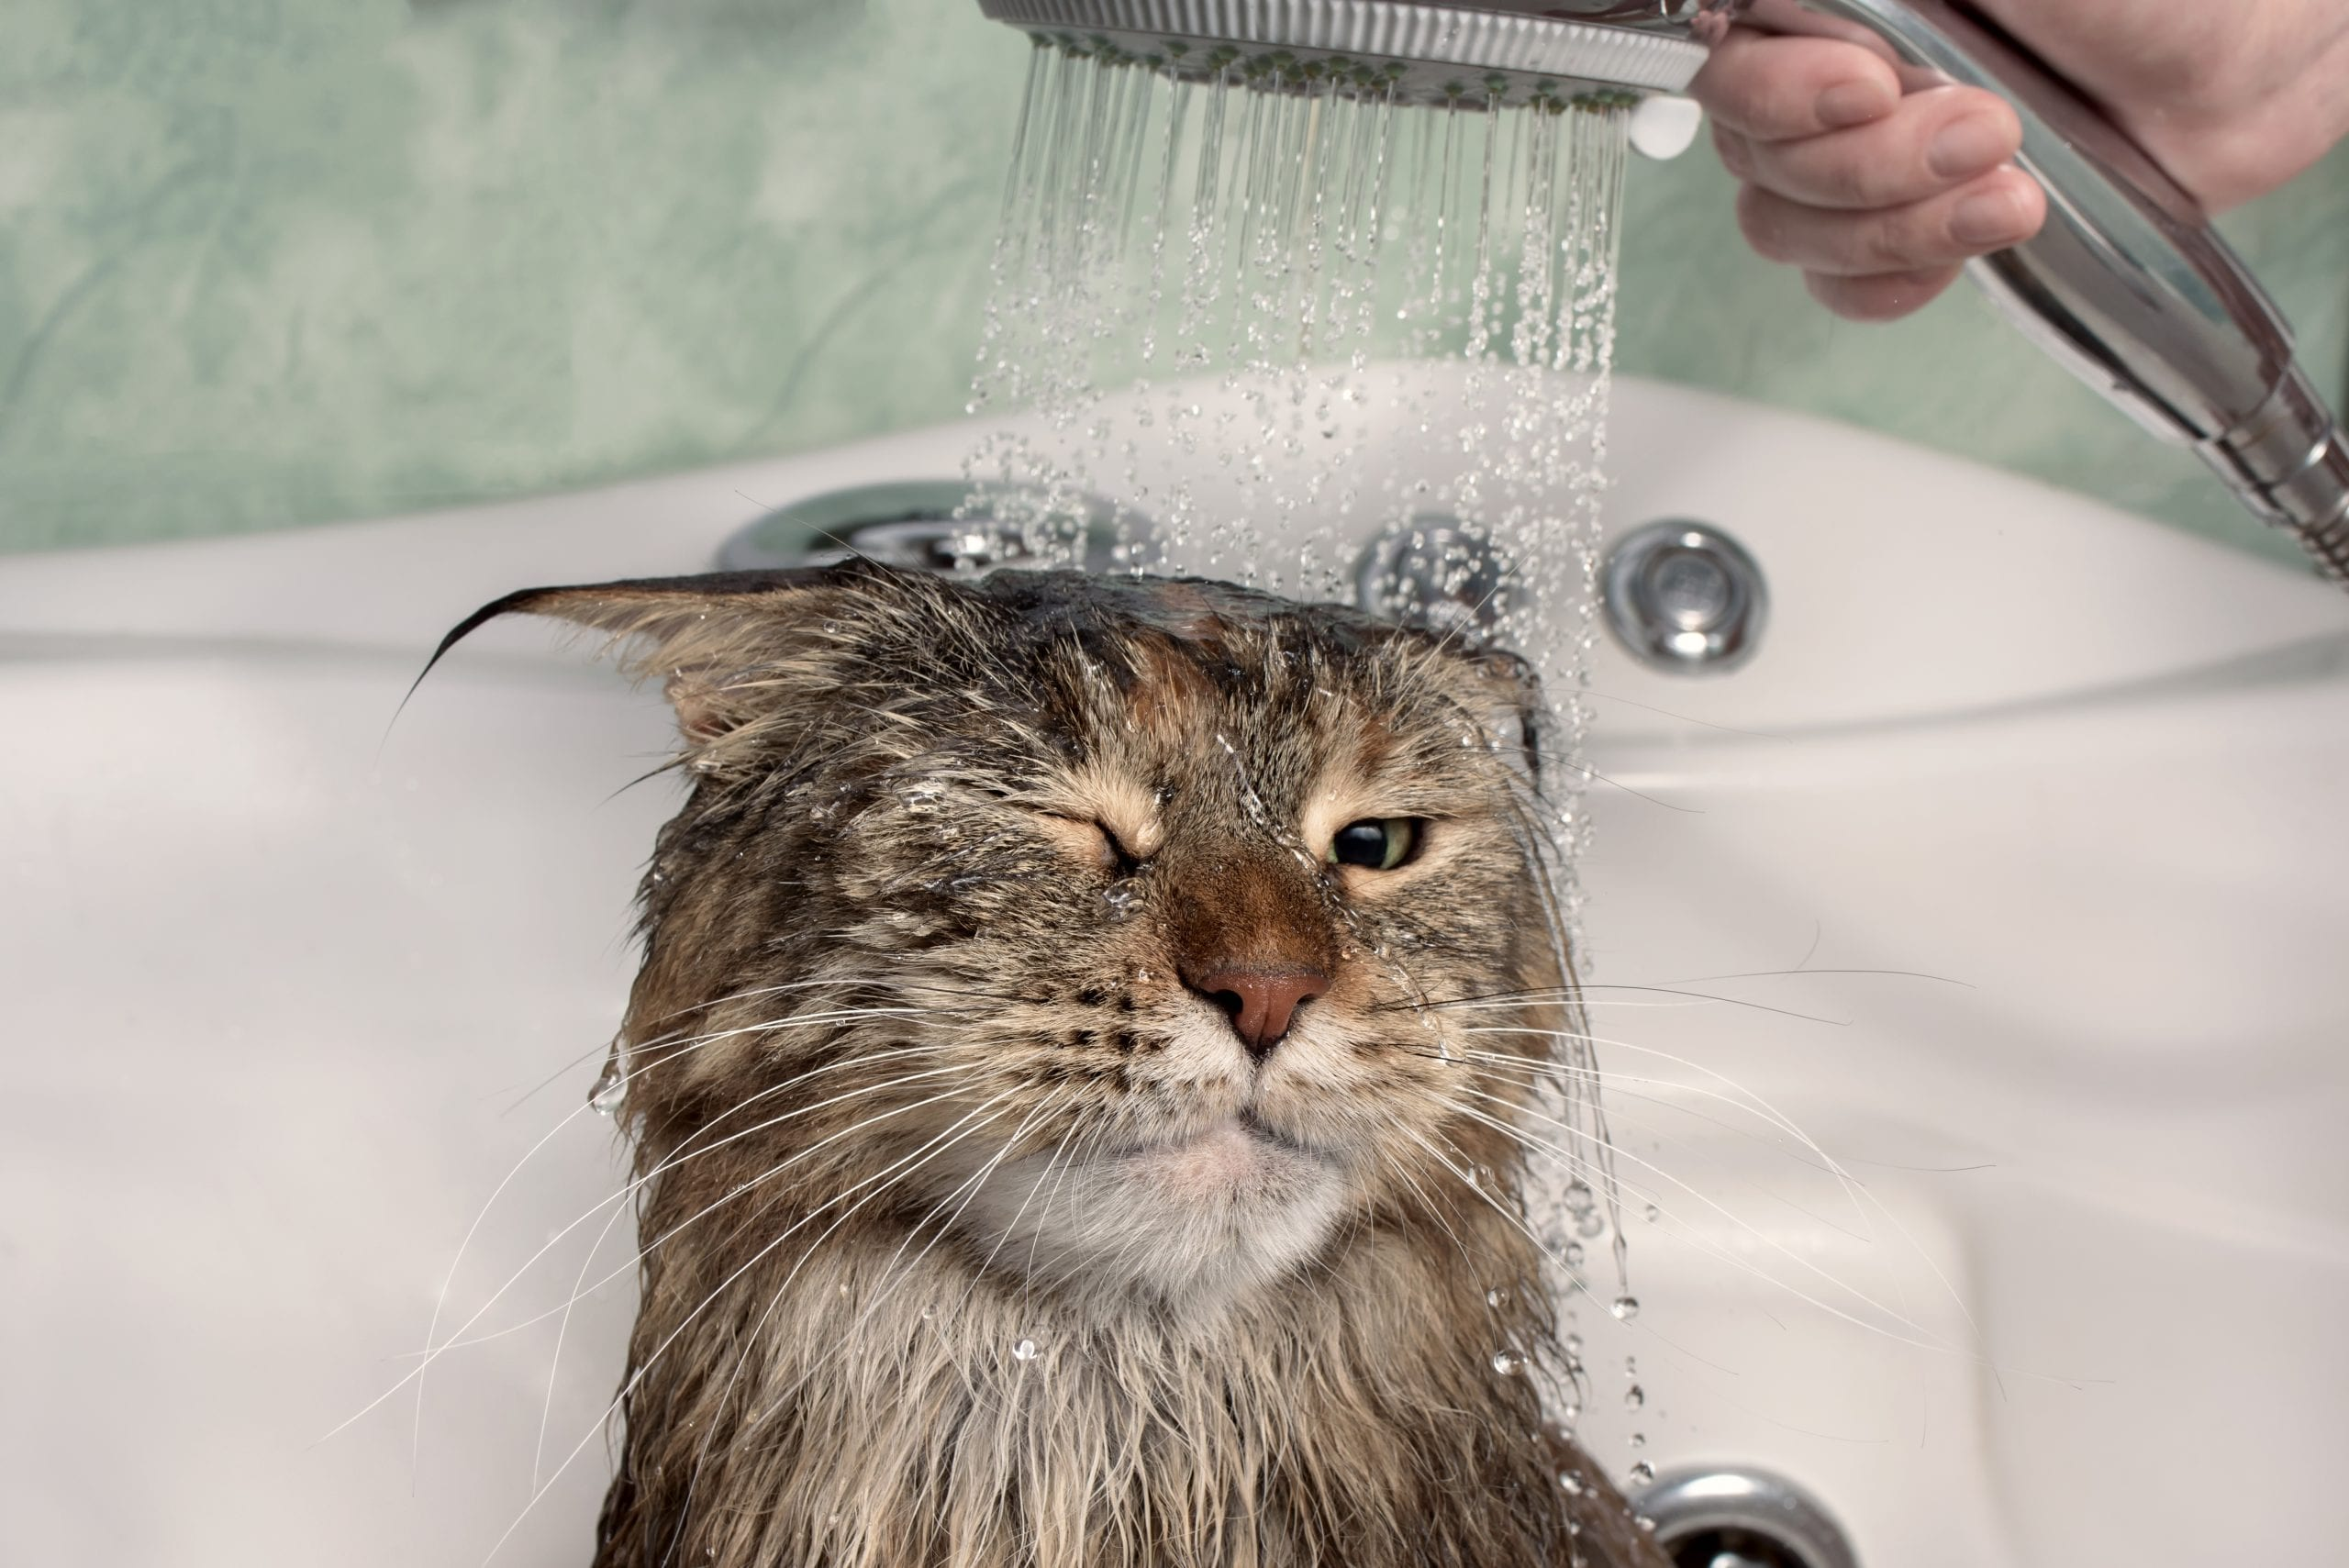 How to wash a cat without cat shampoo